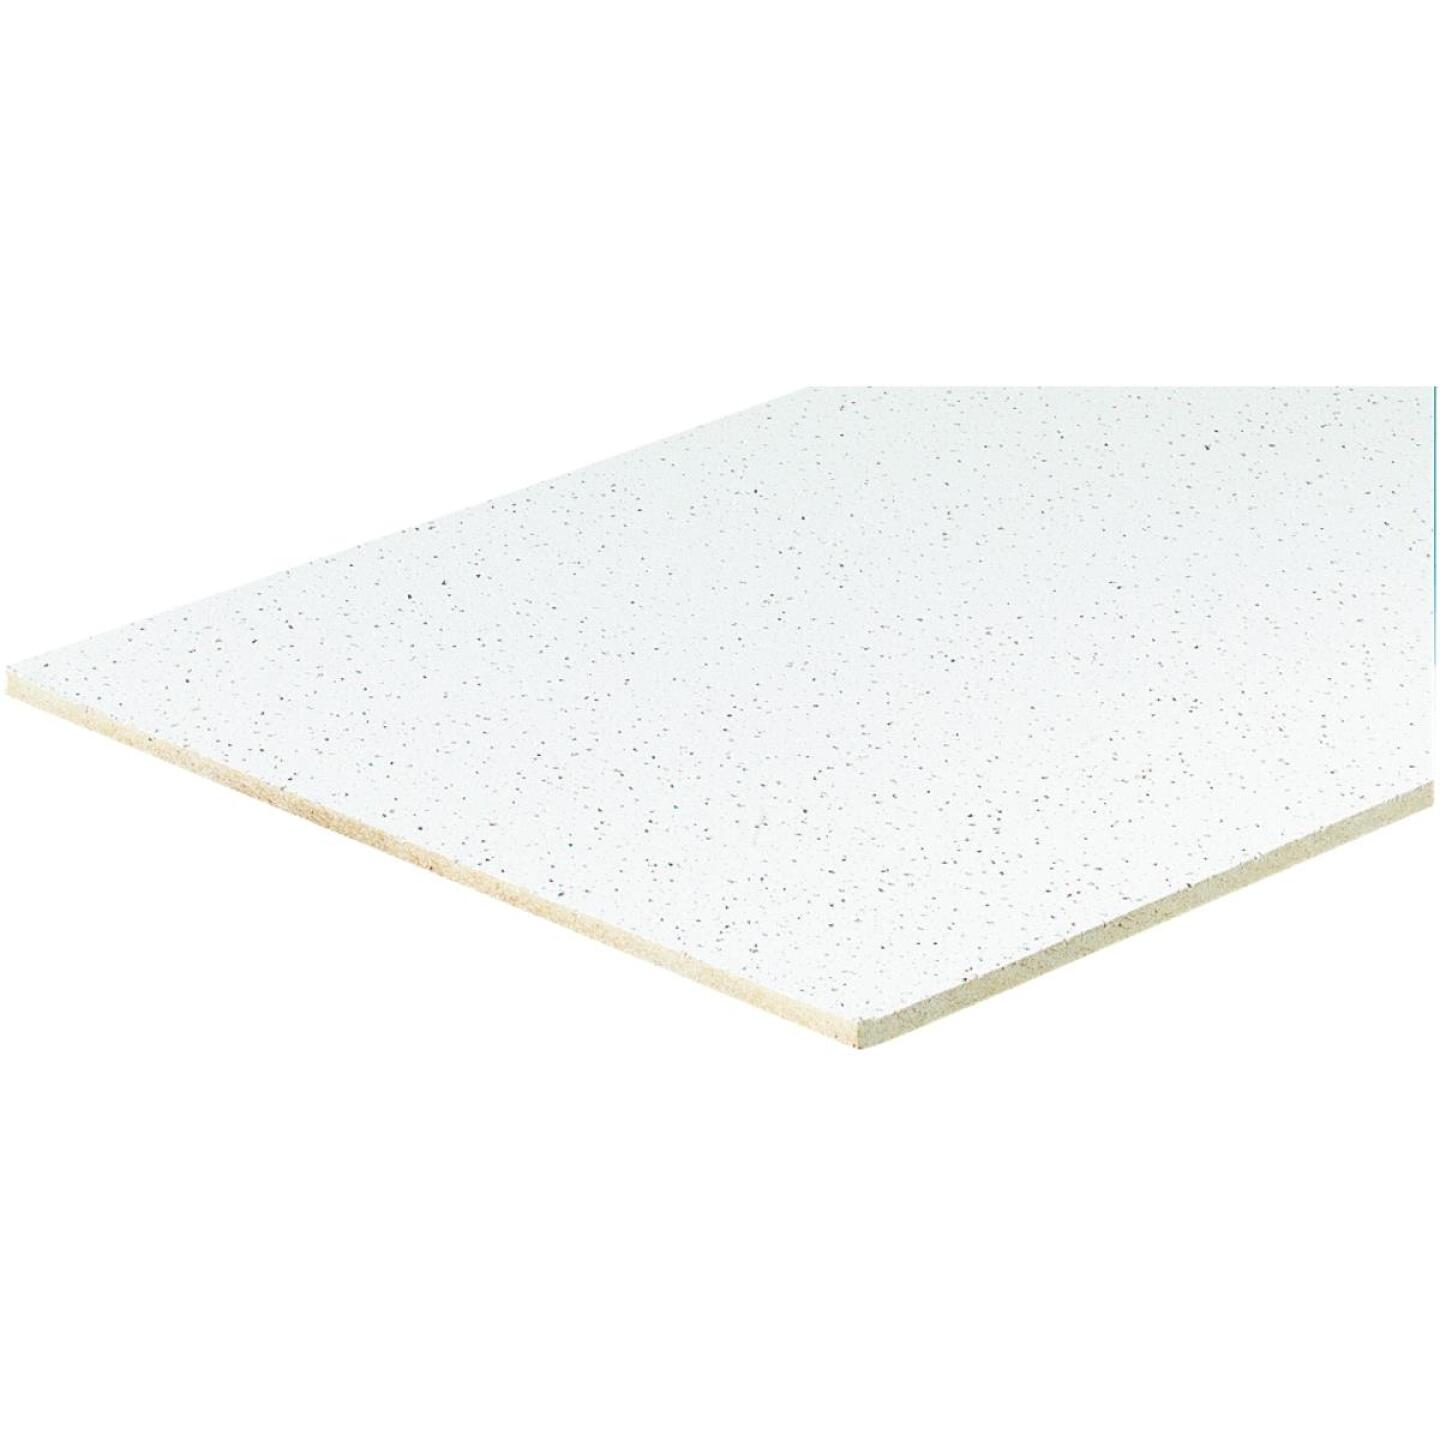 Radar Fissured 2 Ft. x 2 Ft. White Mineral Fiber Square Edge Suspended Ceiling Tile (16-Count) Image 2